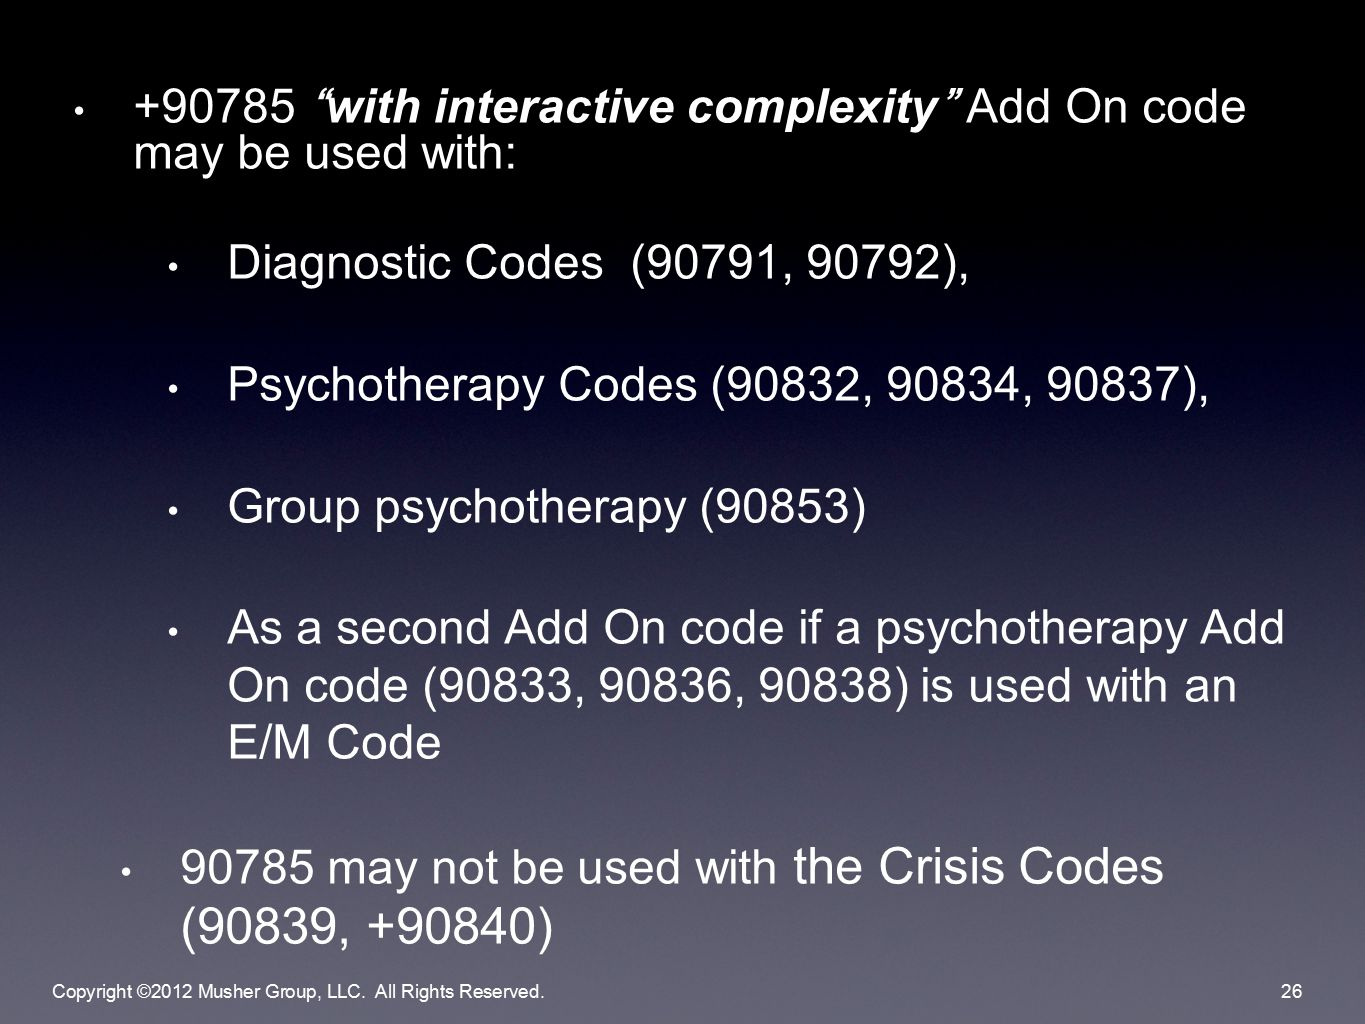 +90785 with interactive complexity Add On code may be used with: Diagnostic Codes (90791, 90792), Psychotherapy Codes (90832, 90834, 90837), Group psychotherapy (90853) As a second Add On code if a psychotherapy Add On code (90833, 90836, 90838) is used with an E/M Code 90785 may not be used with the Crisis Codes (90839, +90840) Copyright ©2012 Musher Group, LLC.